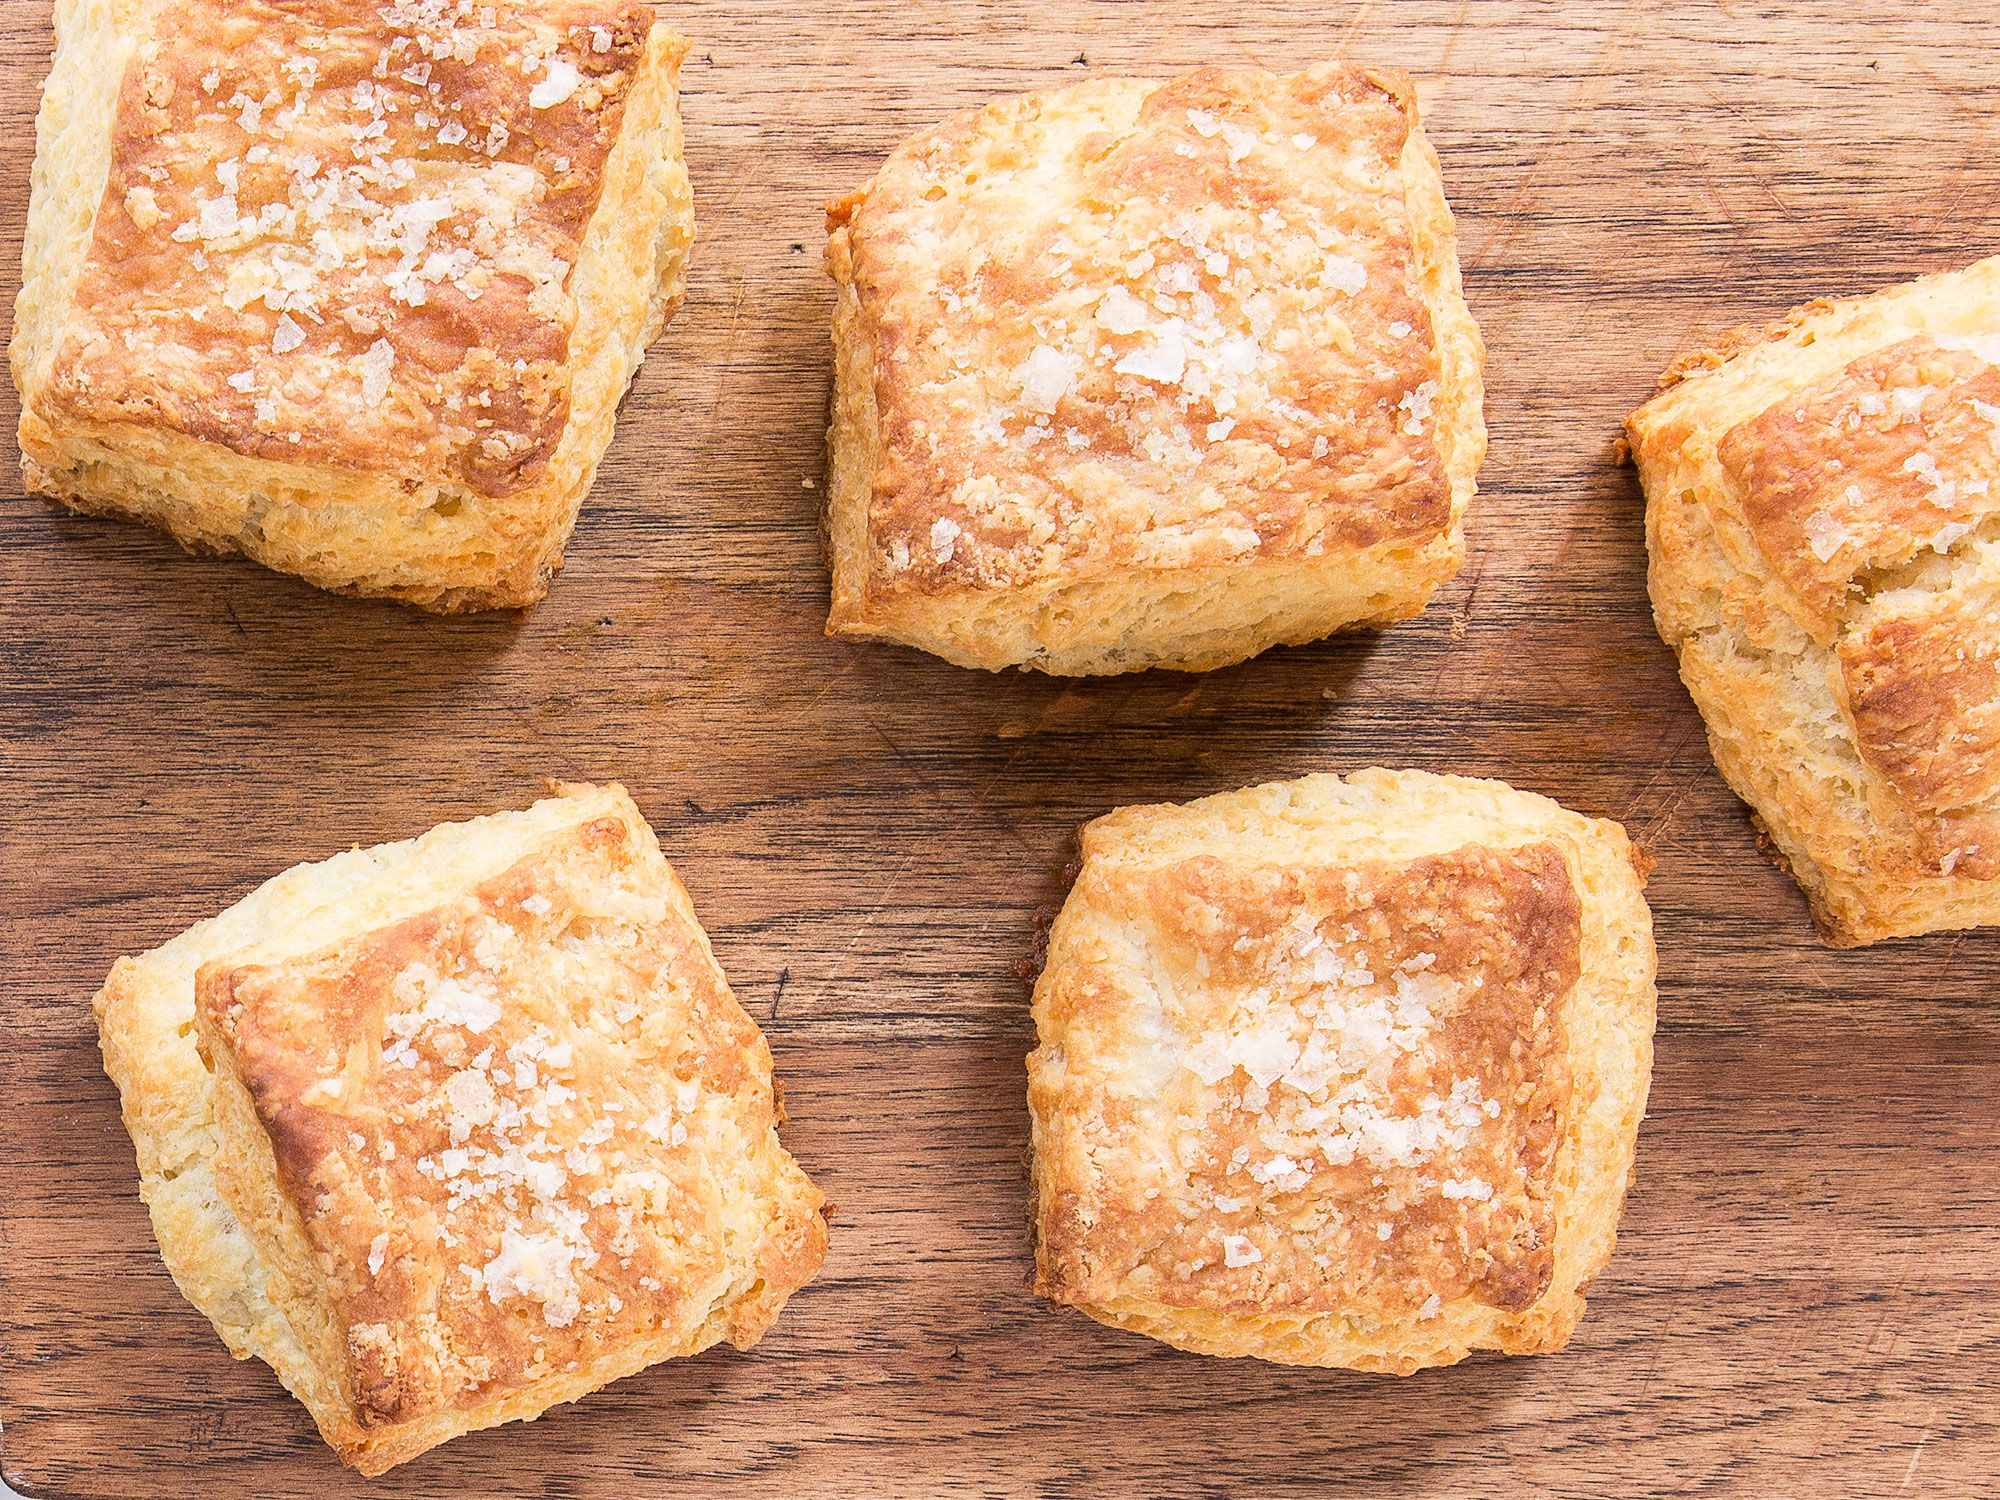 """Treated like puff pastry, the dough for these buttery biscuits is rolled and folded several times to create multiple flaky layers. Get the recipe for <a href=""""http://www.saveur.com/nancy-silvertons-all-butter-biscuits-recipe"""">Nancy Silverton's All-Butter Biscuits</a>"""